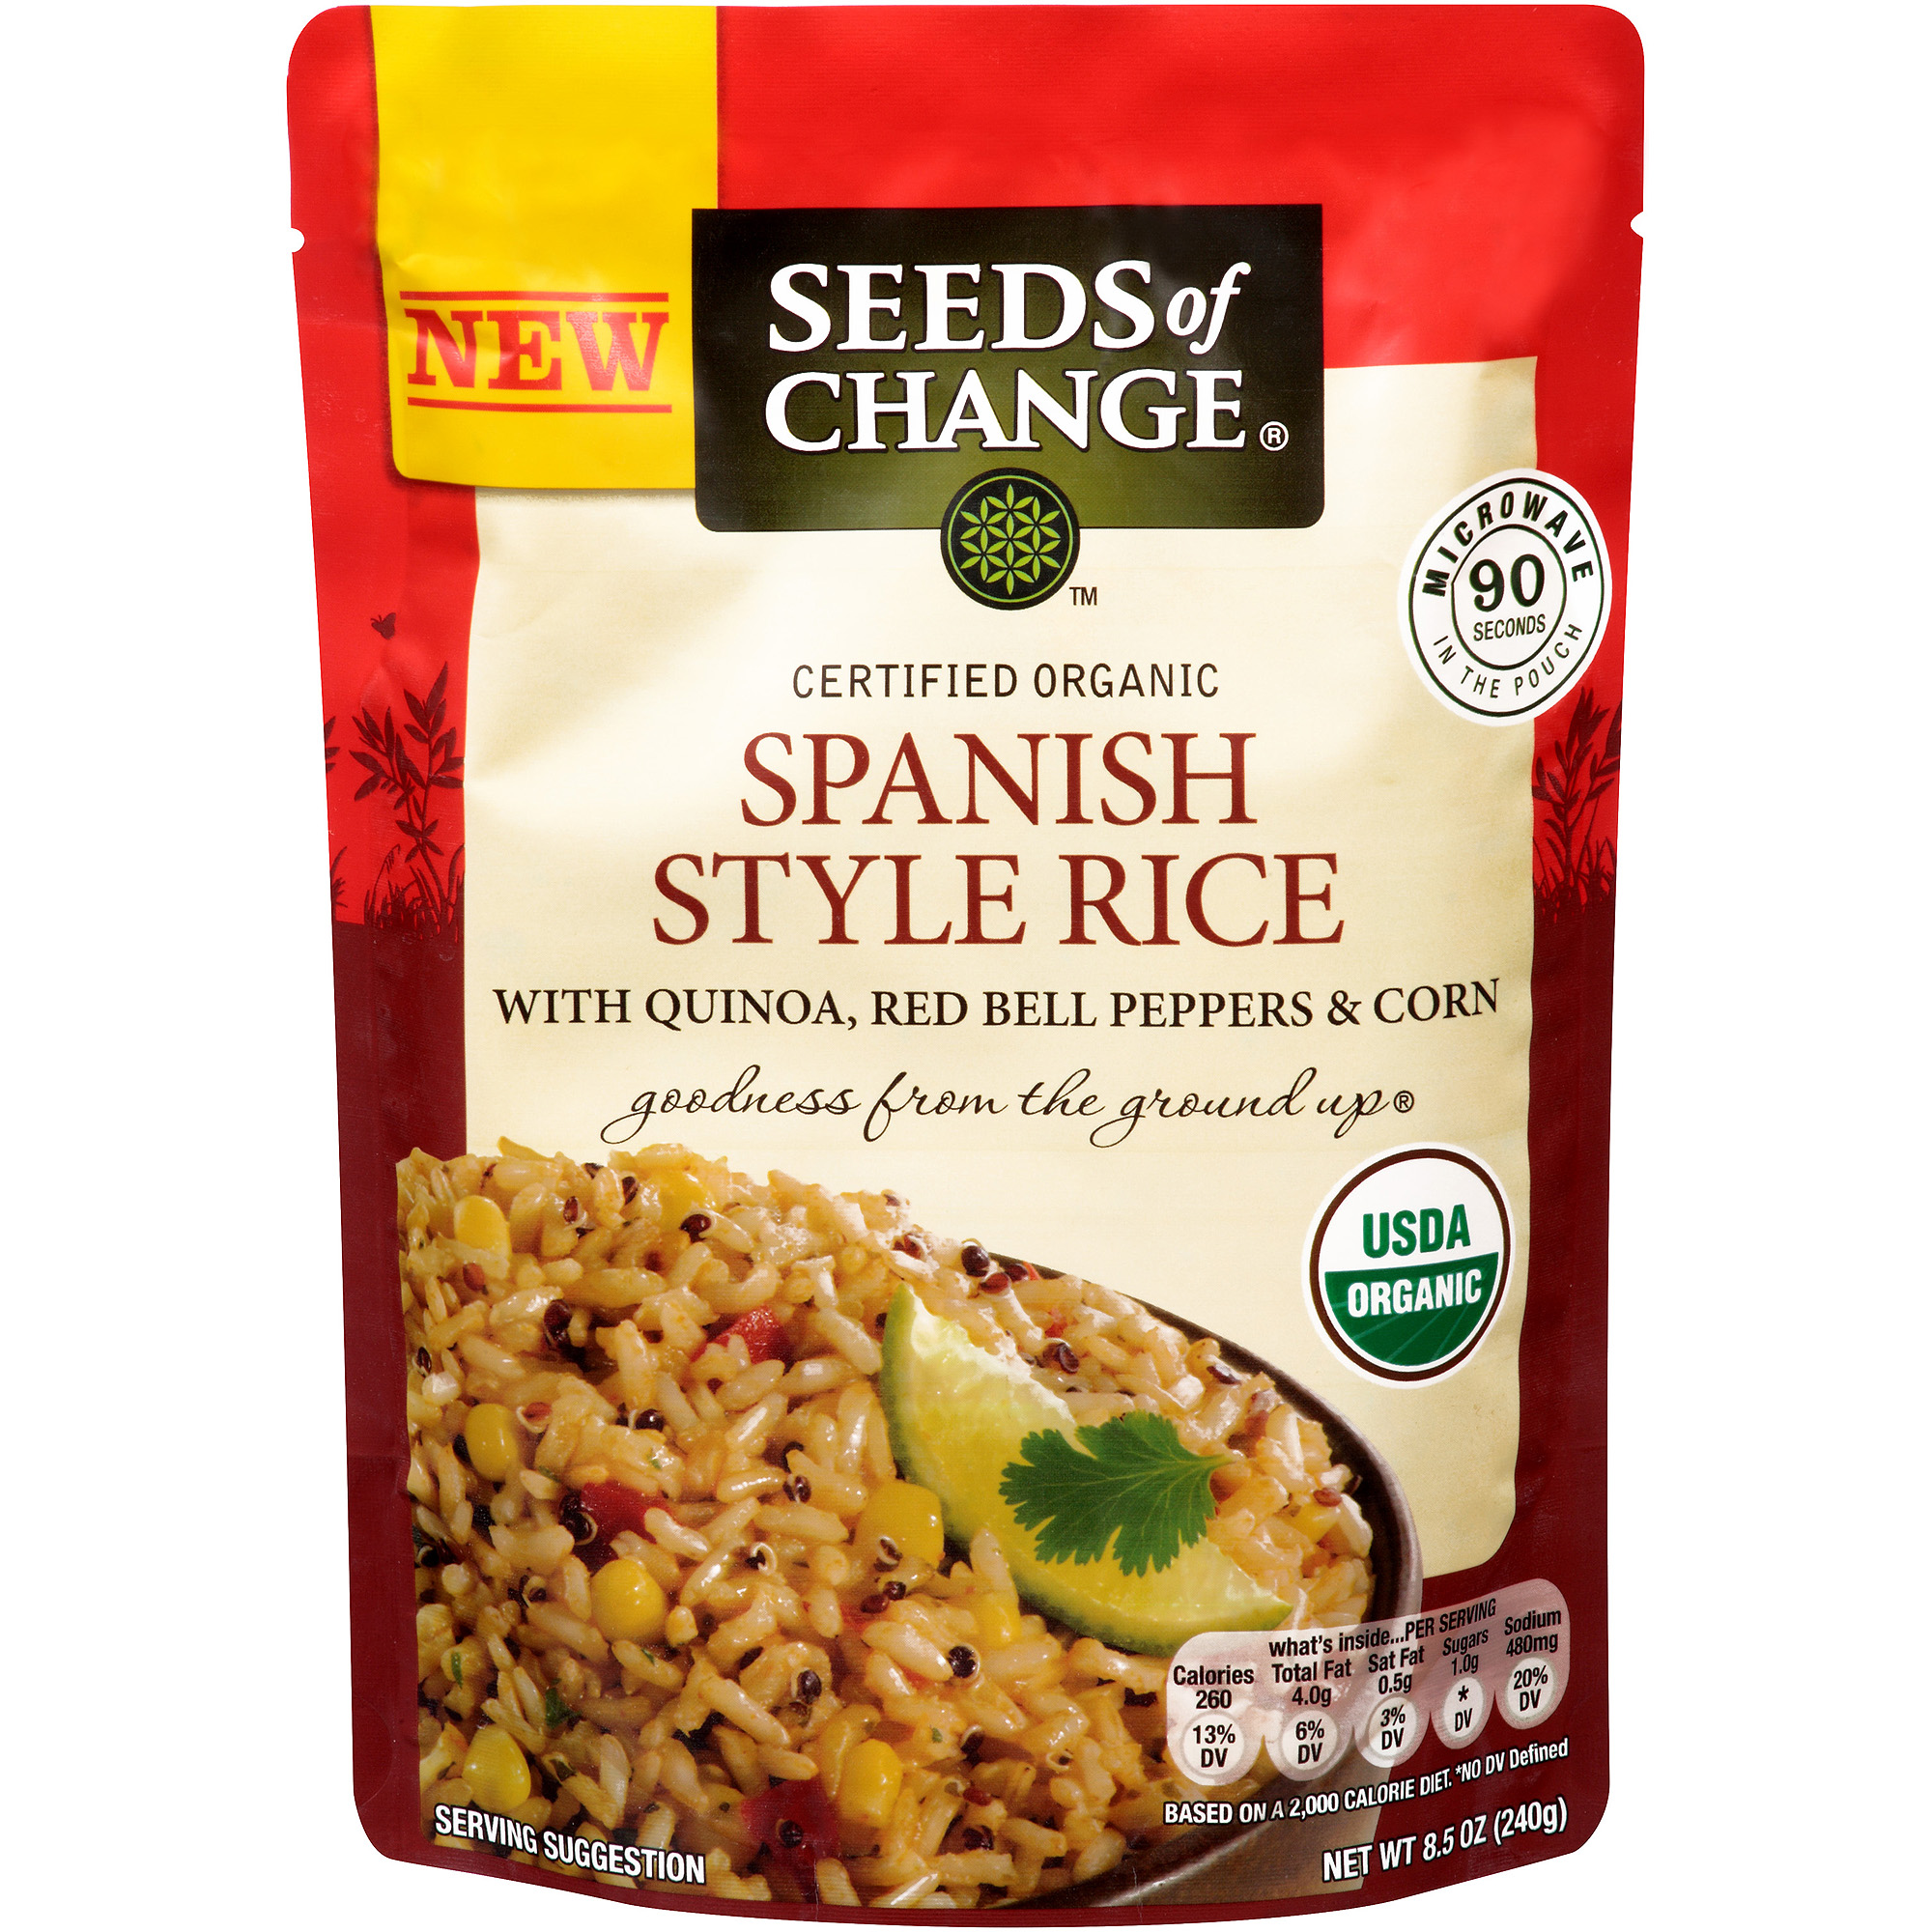 Seeds of Change Spanish Style Rice with Quinoa, Red Bell Peppers & Corn, 8.5 oz